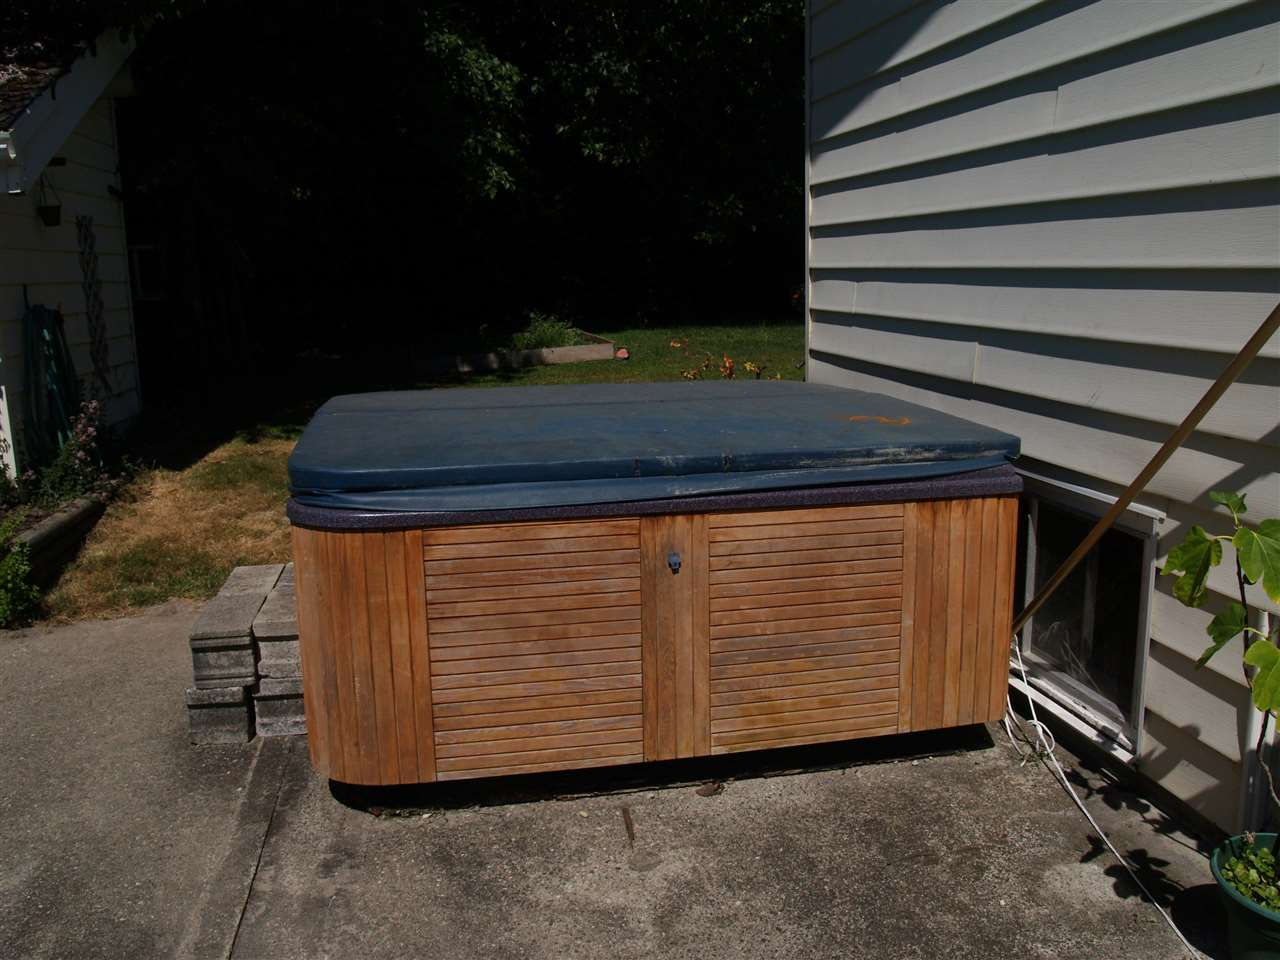 Enjoy the out door hot tub after a cool swim in the pool.